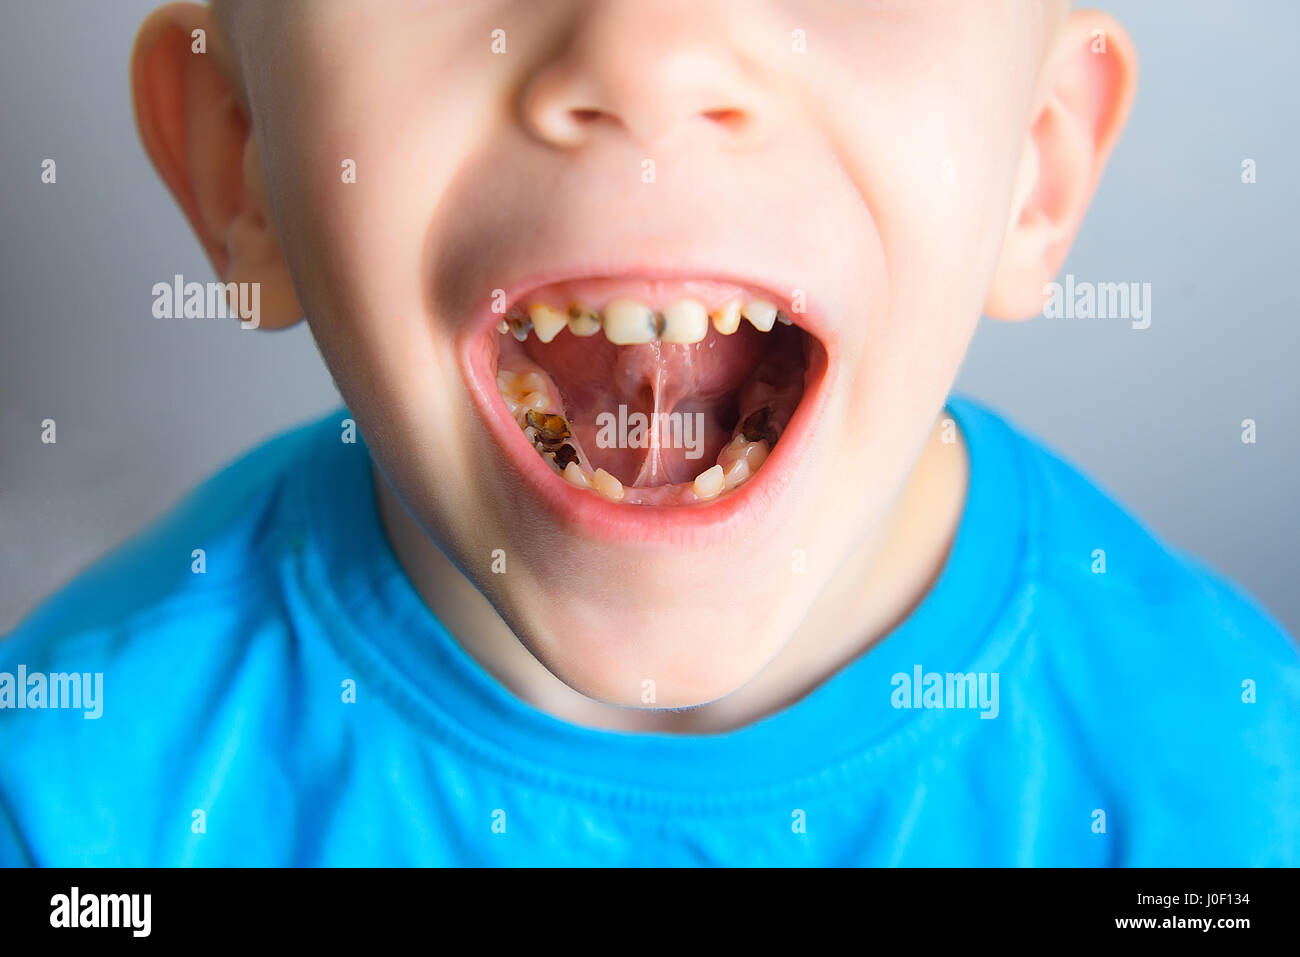 caries on the teeth of a young child blue tshirt stock